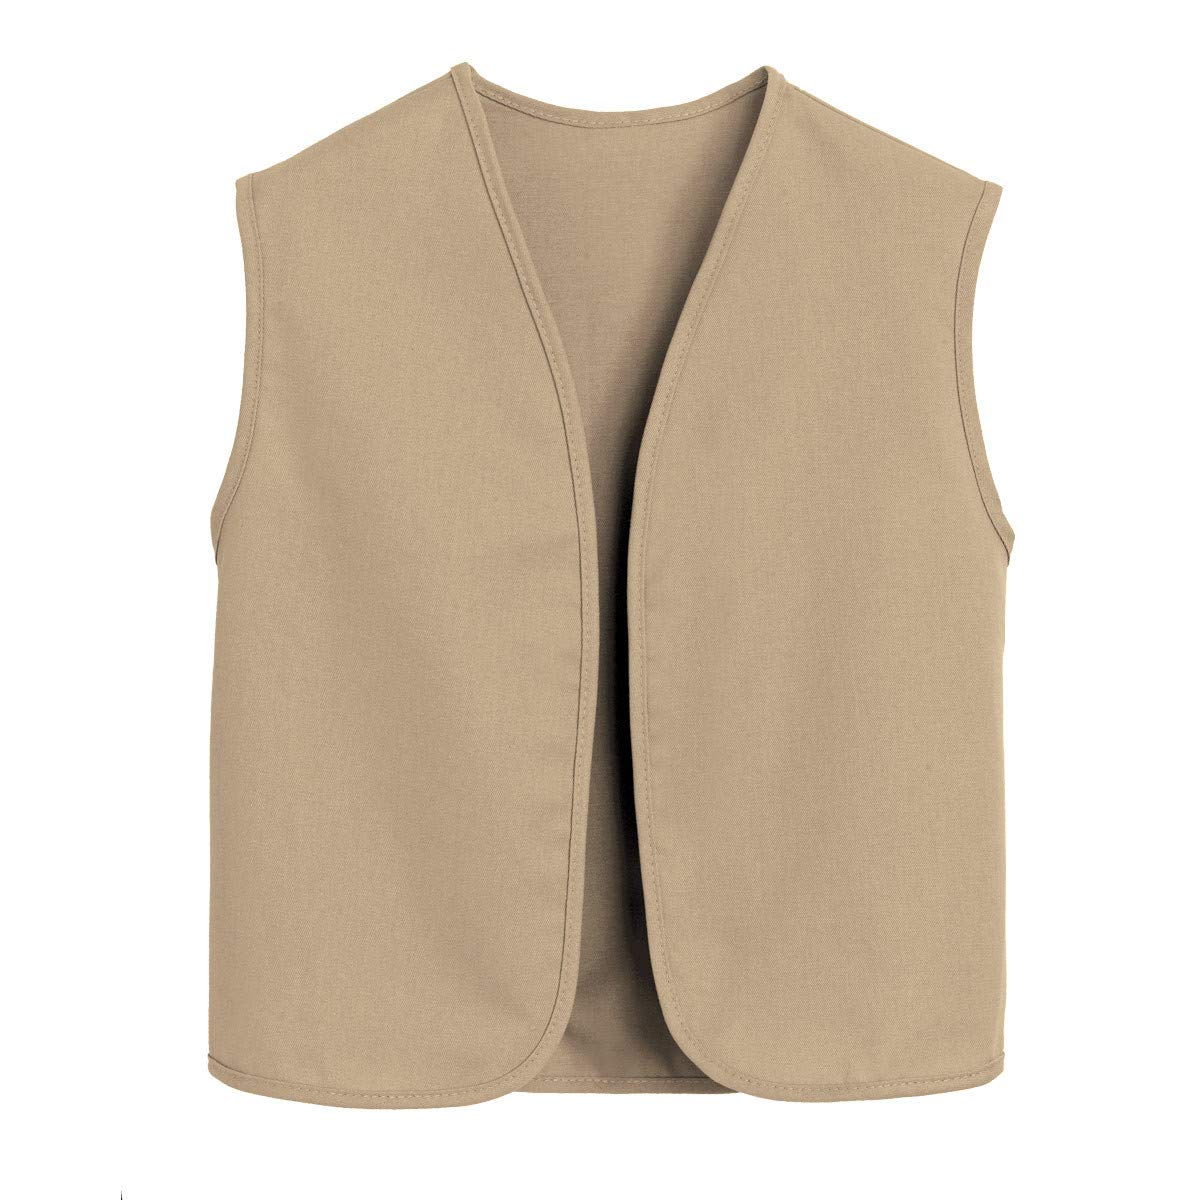 Official Cadette, Senior and Ambassador Khaki Vest by Girl Scouts of the USA